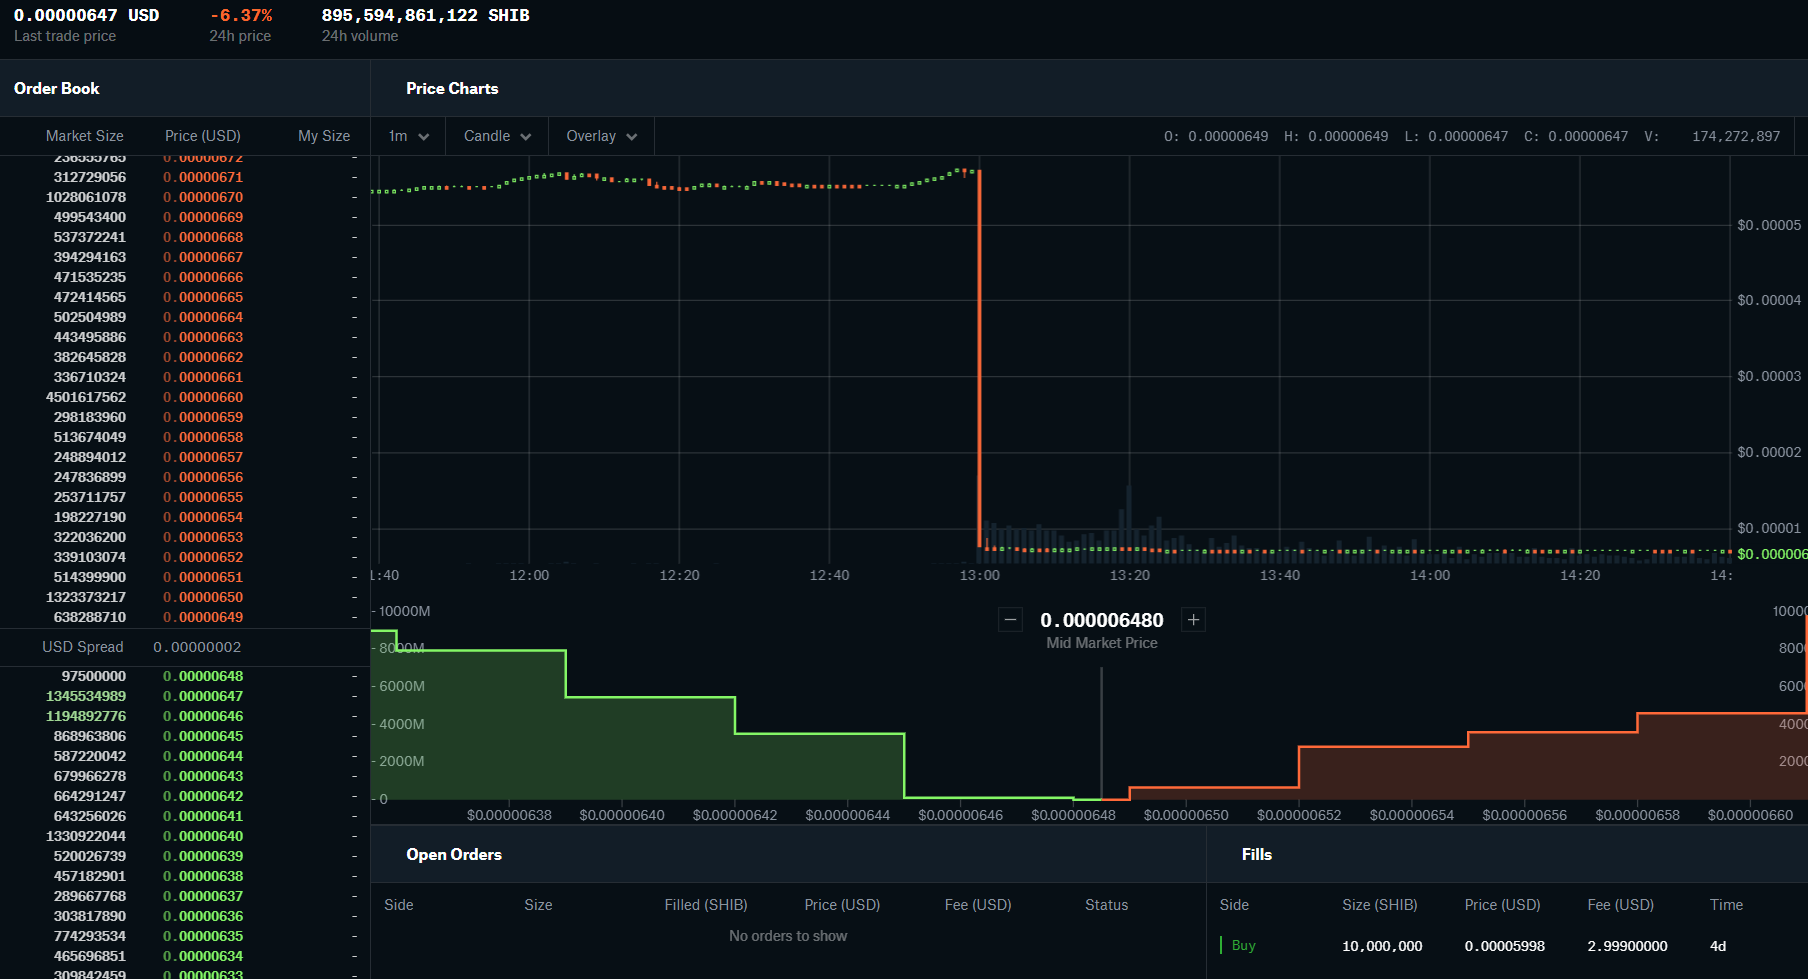 SHIVB price manipulated only on Coinbase